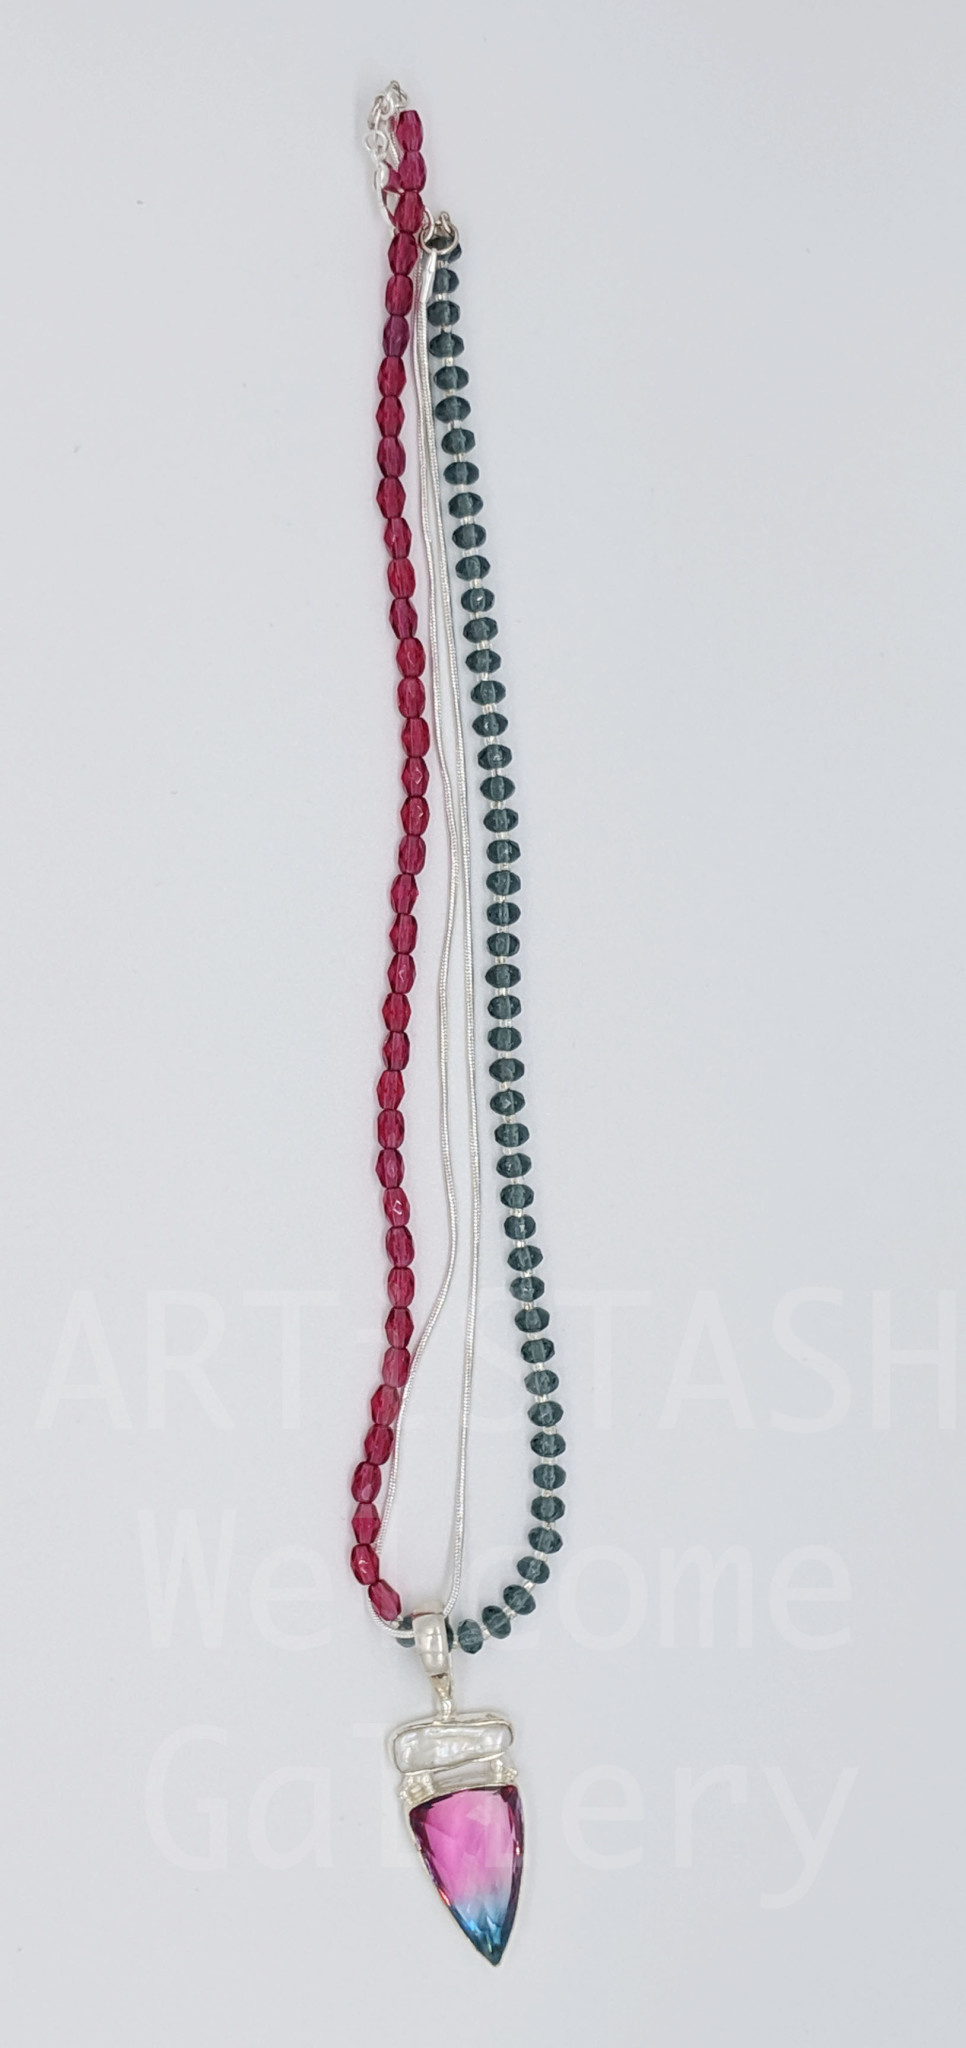 "Starshine Designs - Christy Gurley 18"" Twisted 2'Strand Necklace with Garnet and Crystal Beads and Bi-colored Tourmaline and Biwa Pearl SS Pendant"